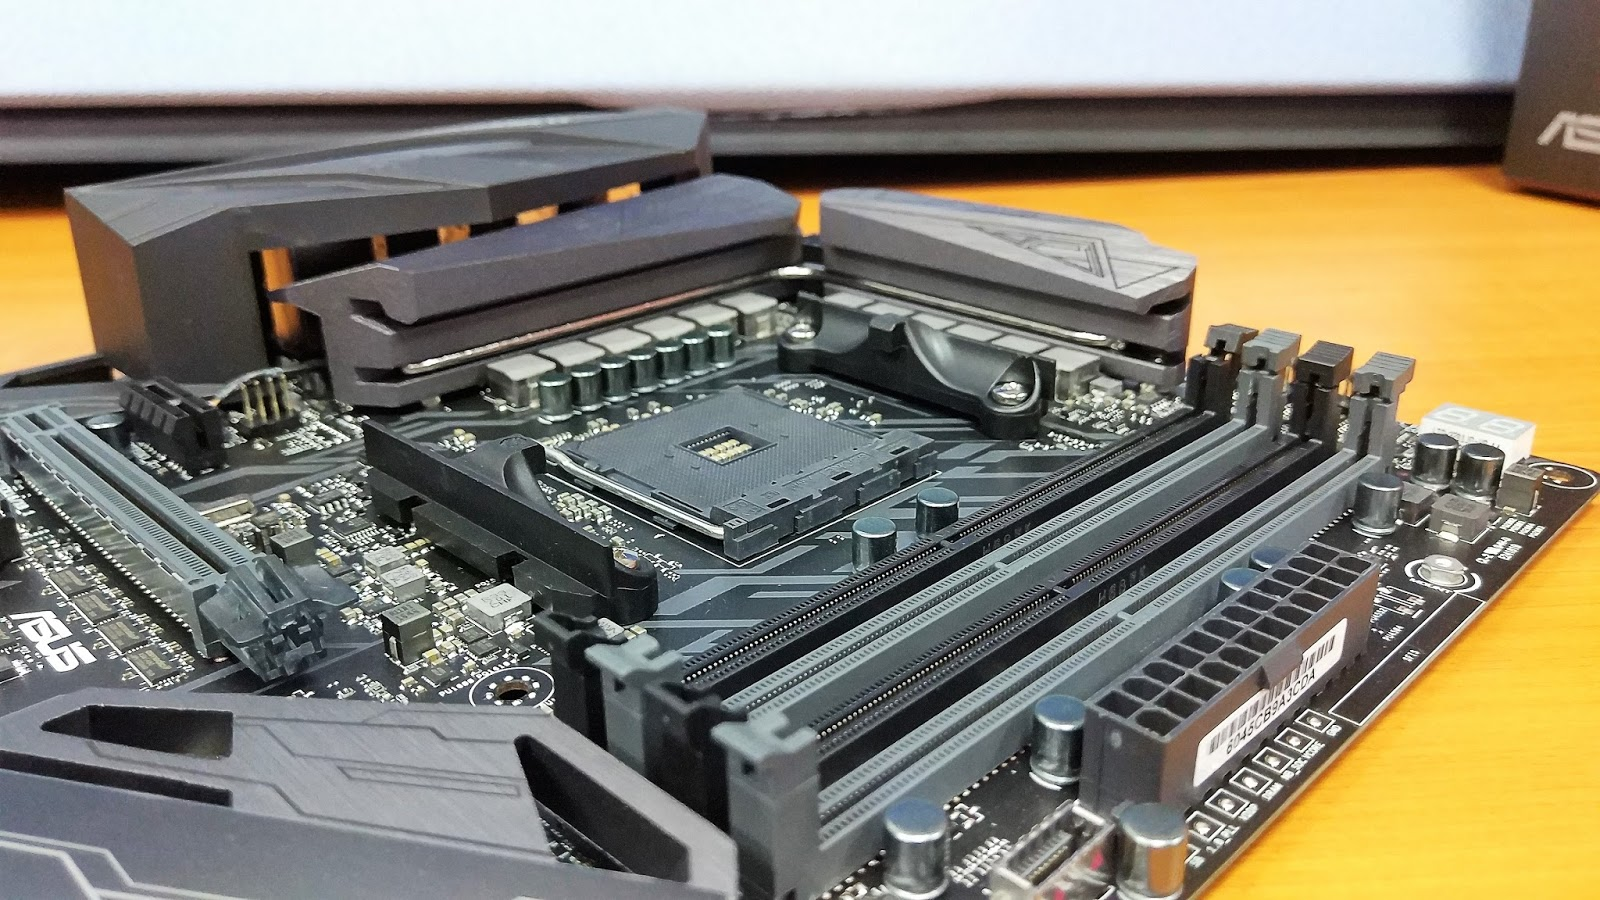 A look at the ASUS ROG CROSSHAIR VI HERO Motherboard - The